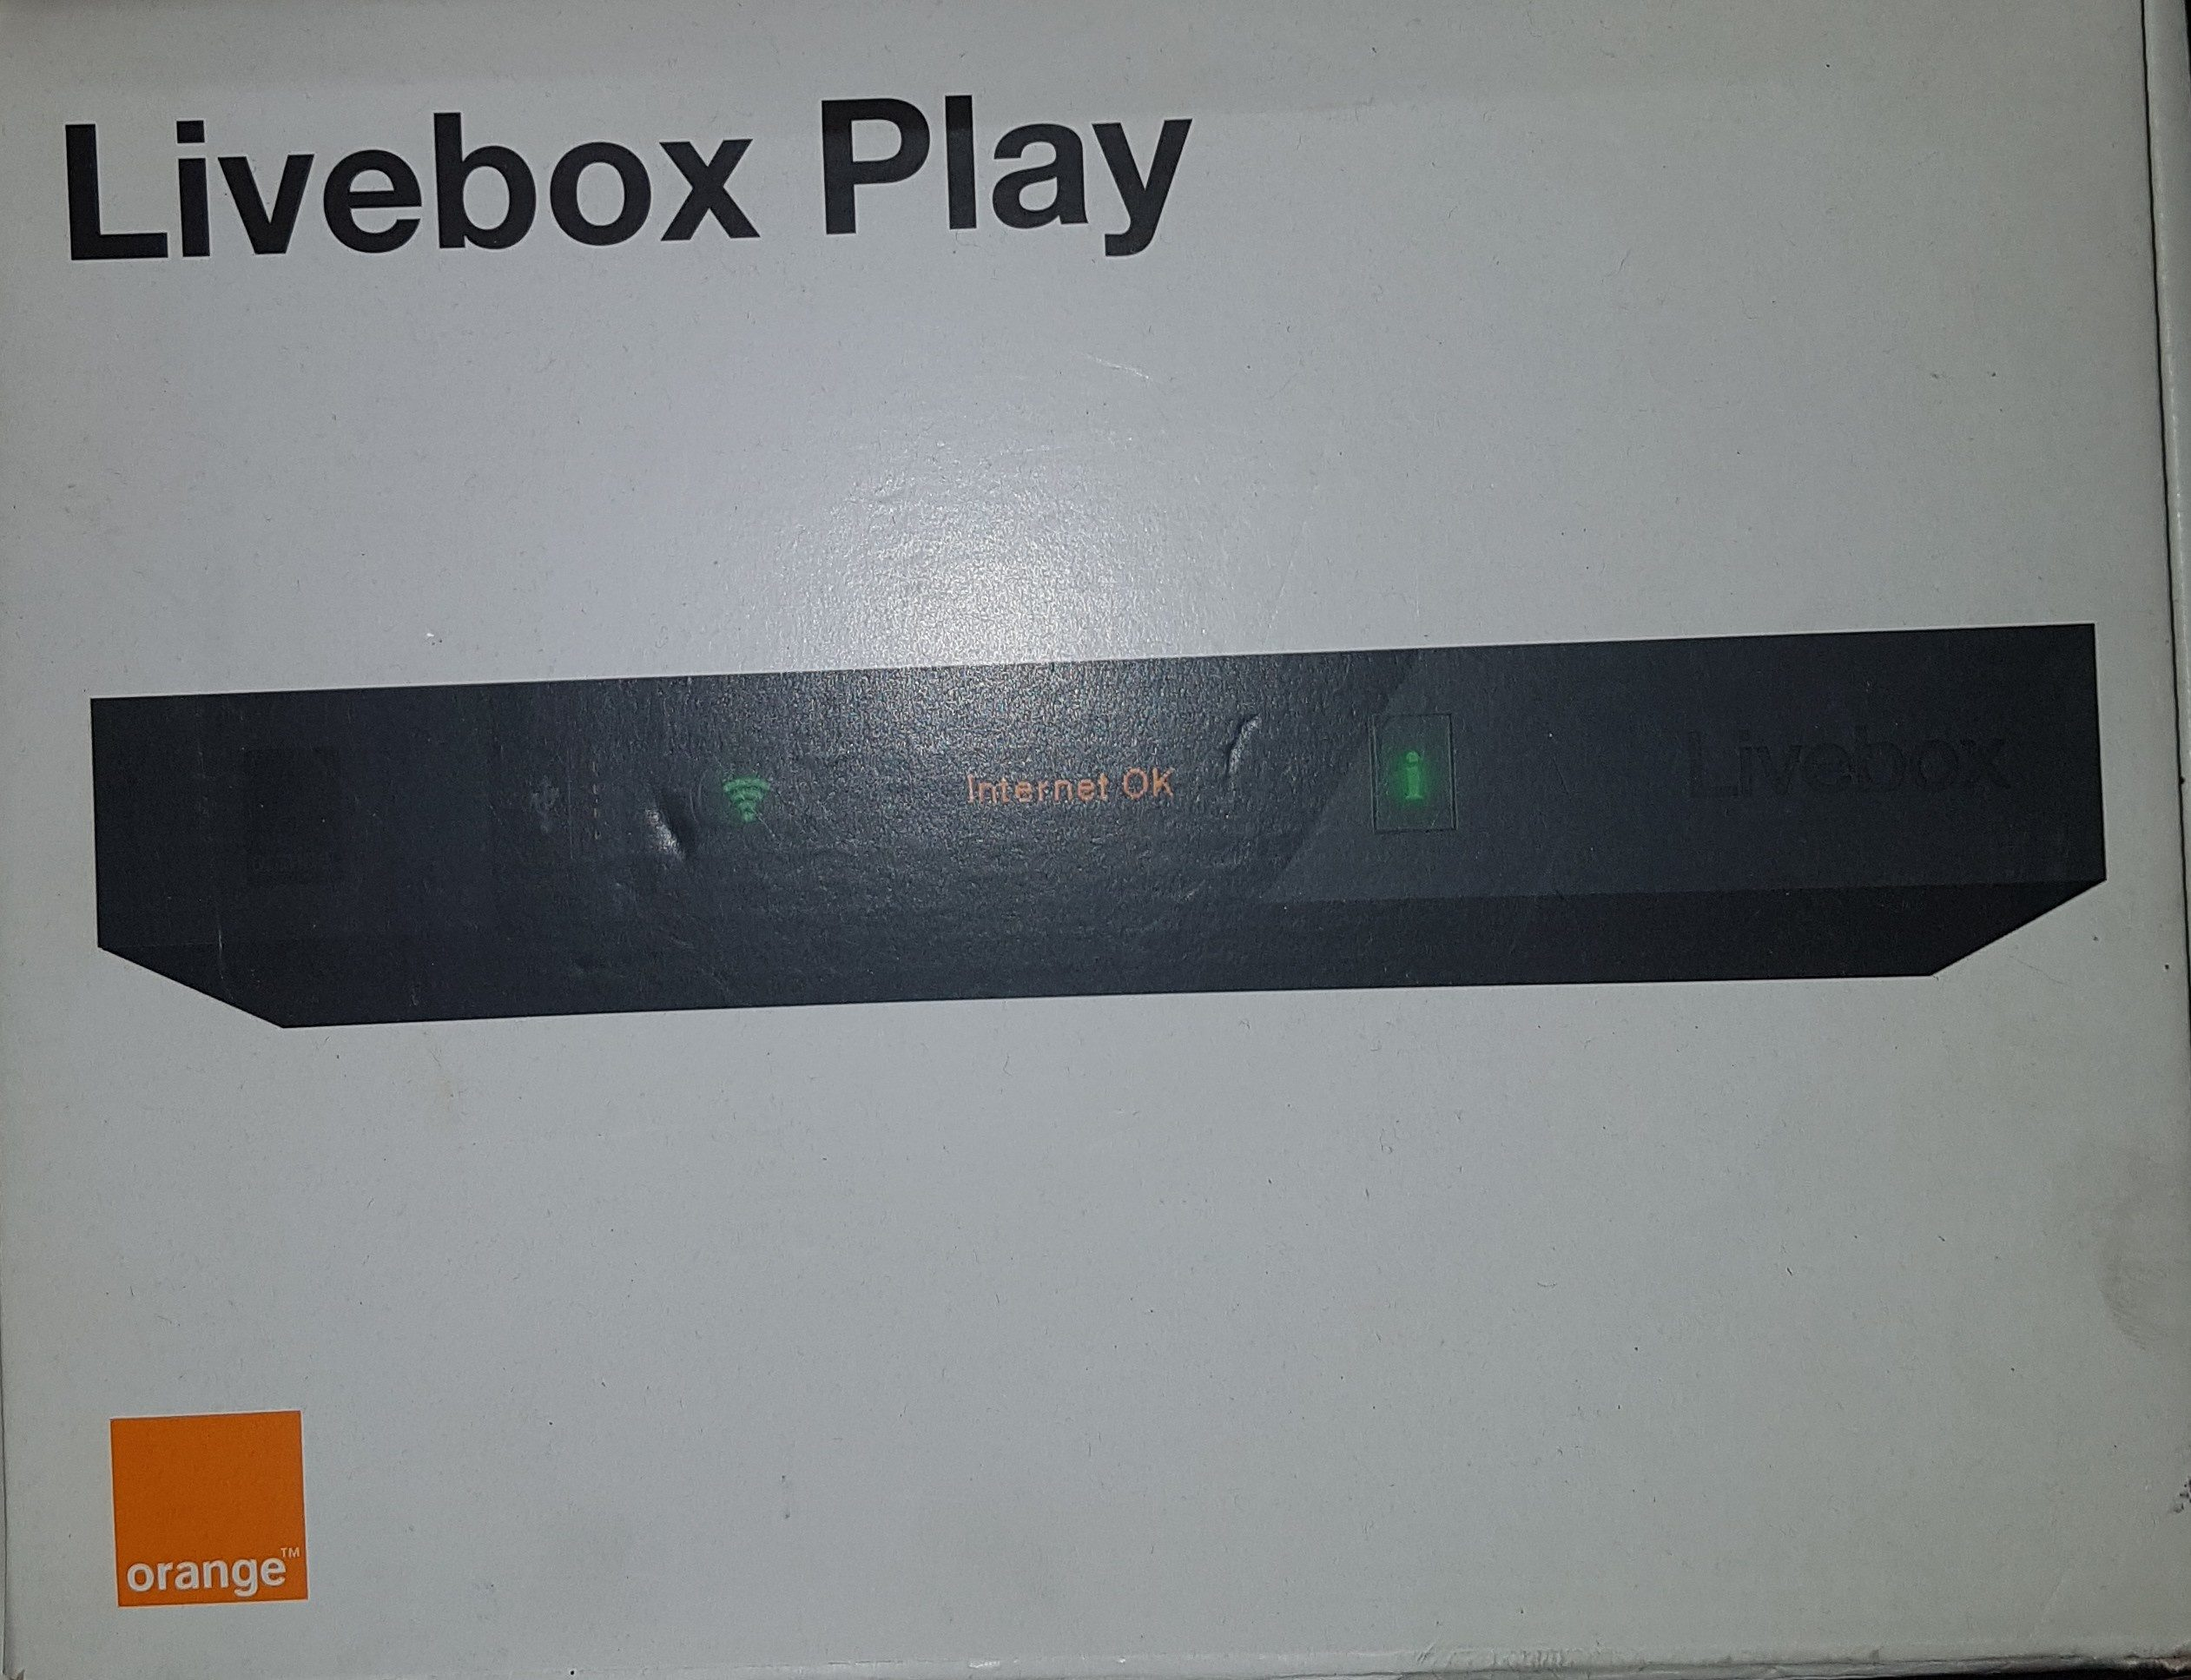 Livebox Play - Product